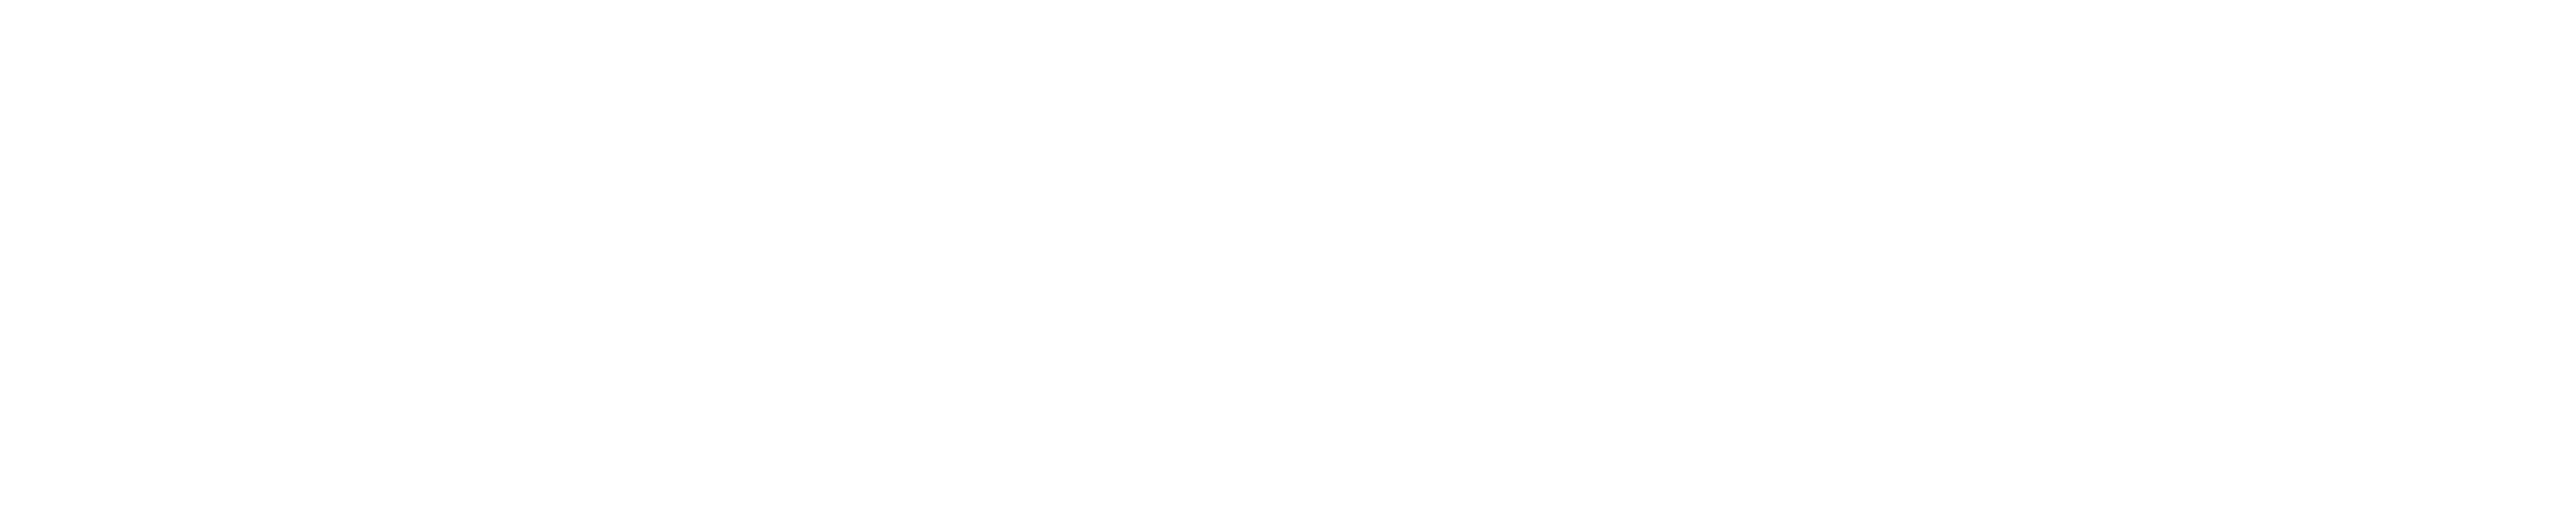 Making Boating Better, Together